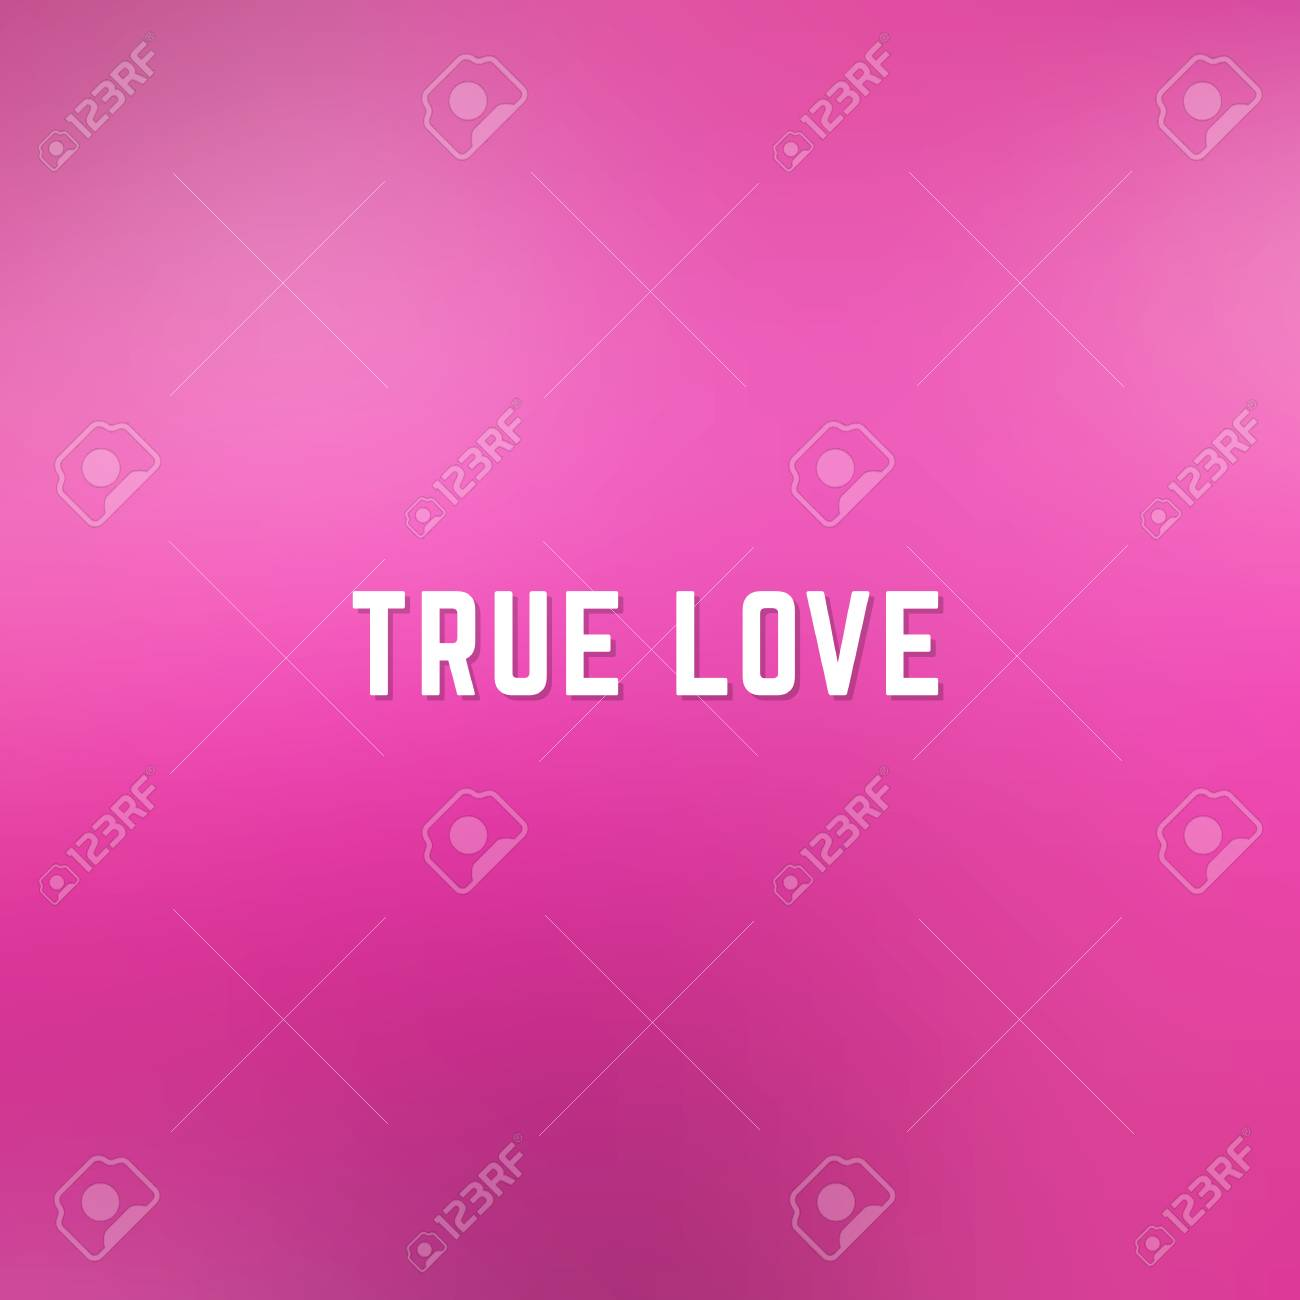 fe6c2434e301 Square blurred spring background in light and dark pink colors with phrase  true love Stock Vector